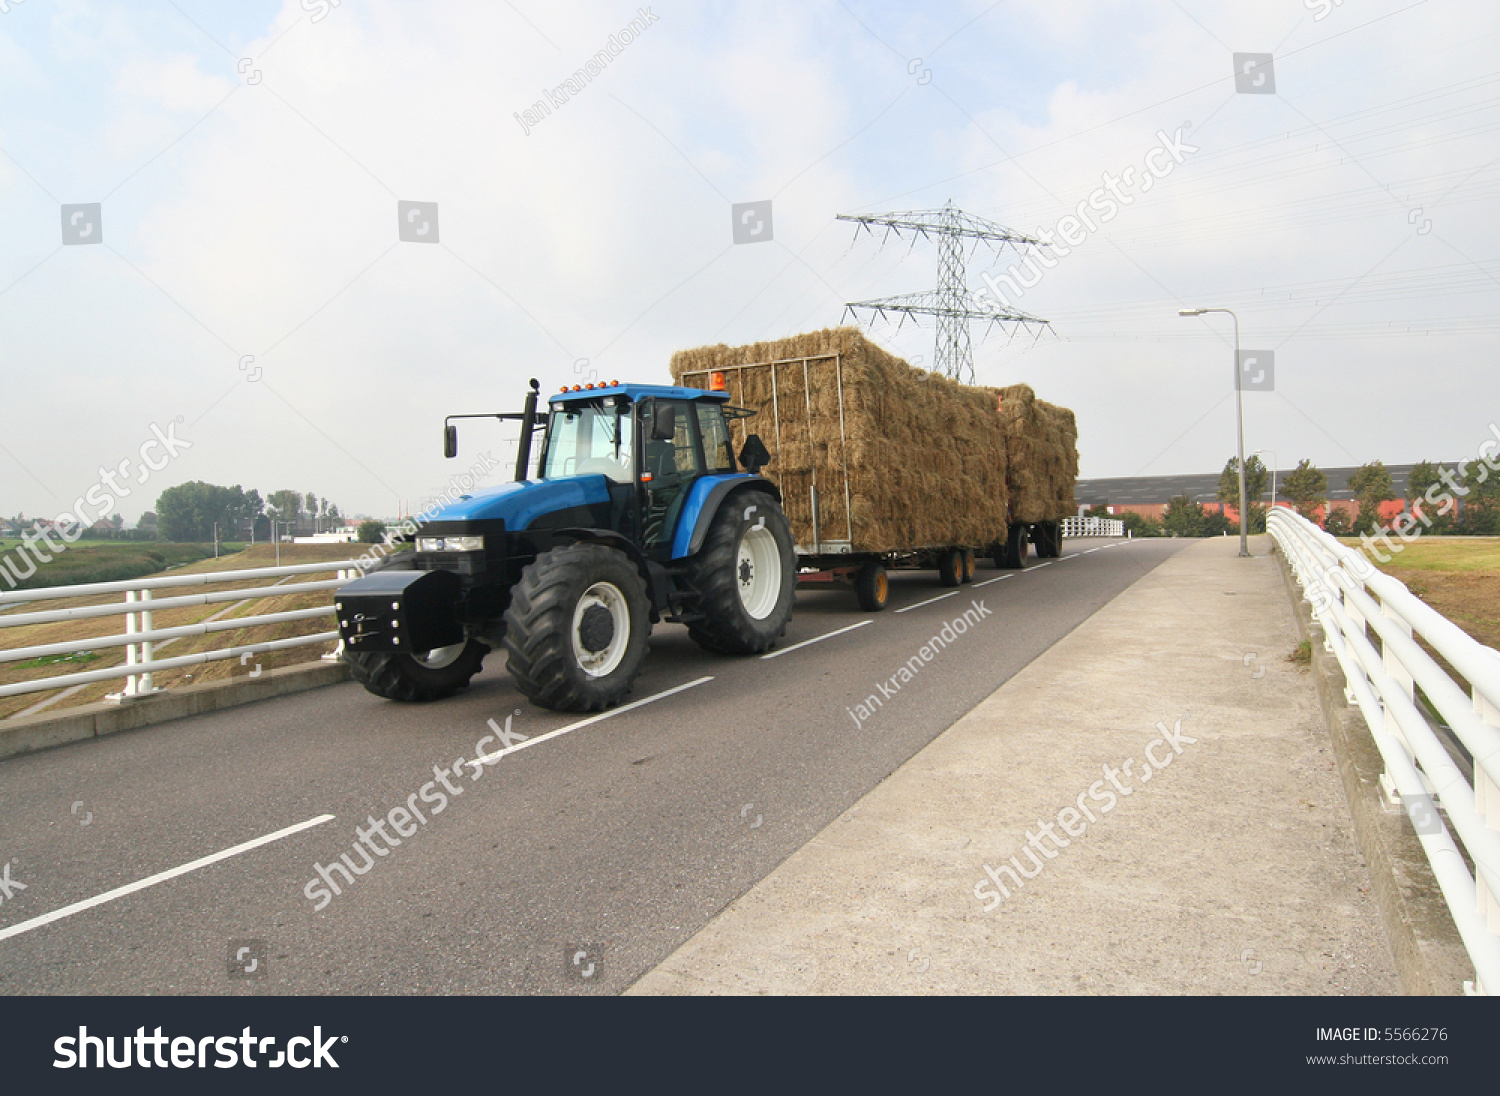 Tractor Pulling Trailer : Tractor pulling a trailer with hay across bridge stock